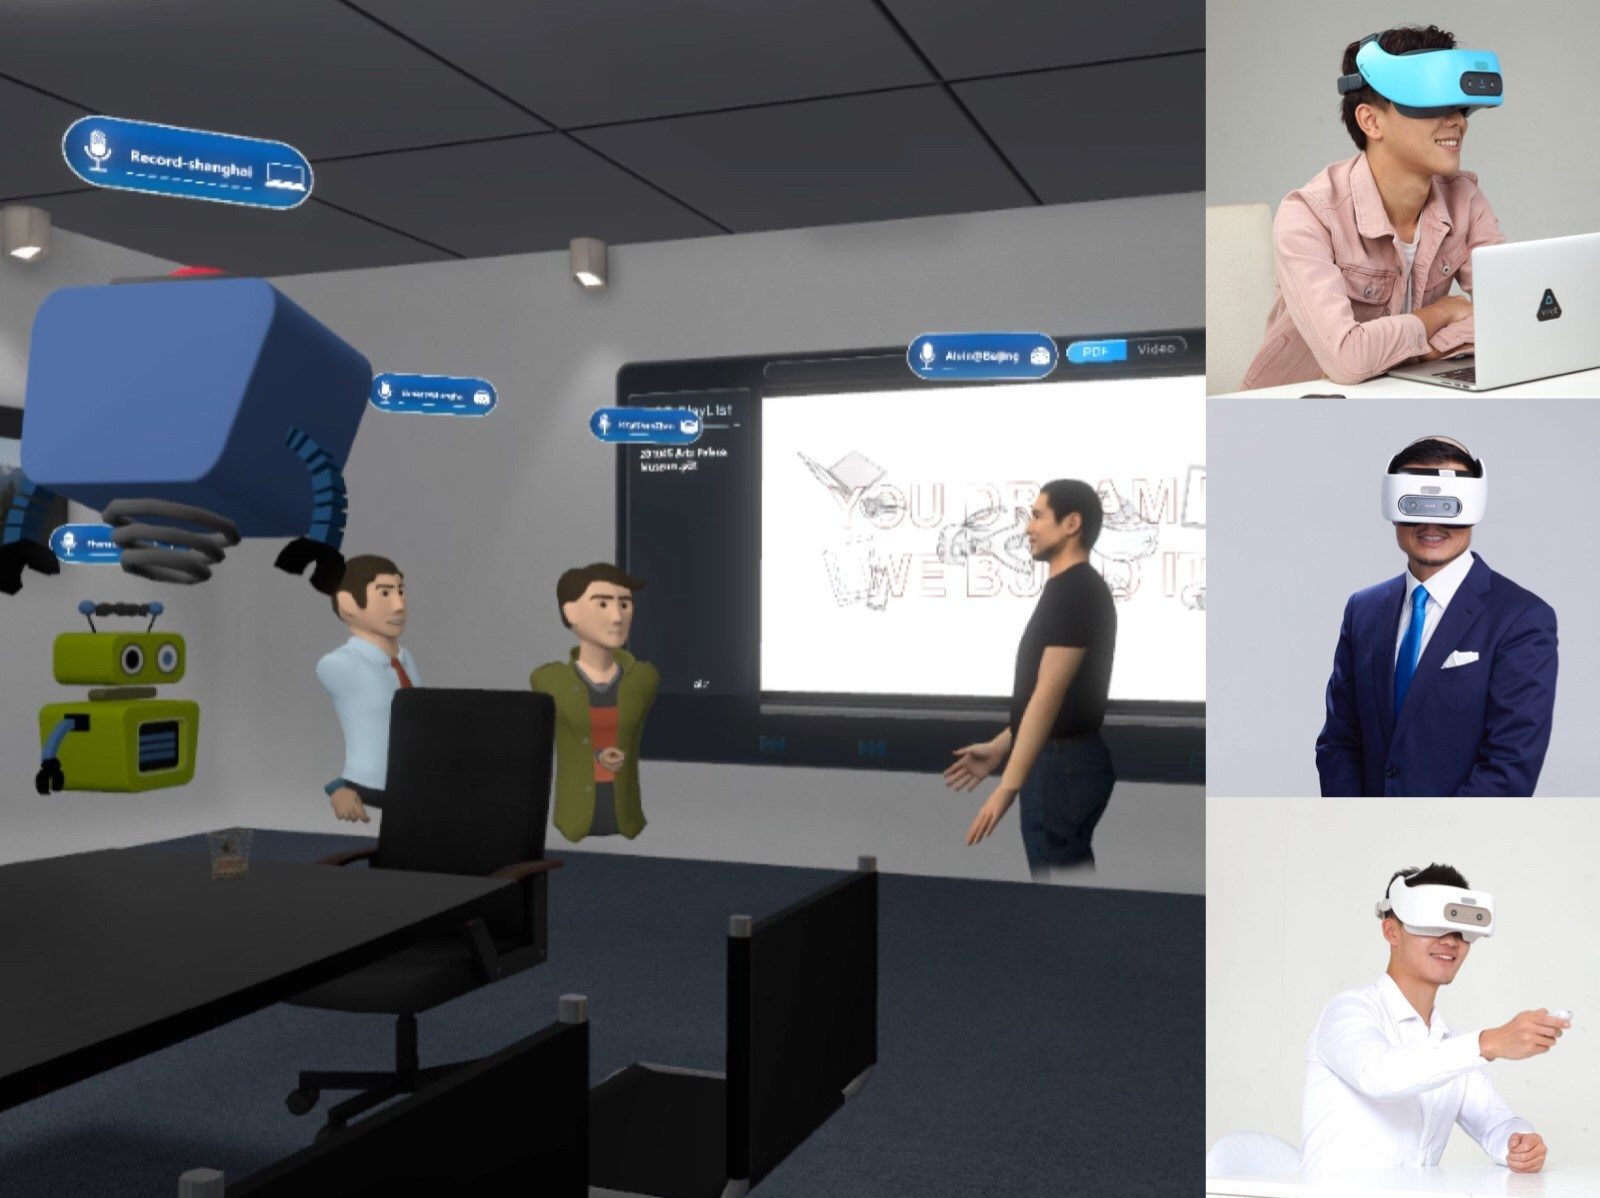 New Work – Immersive Learning News